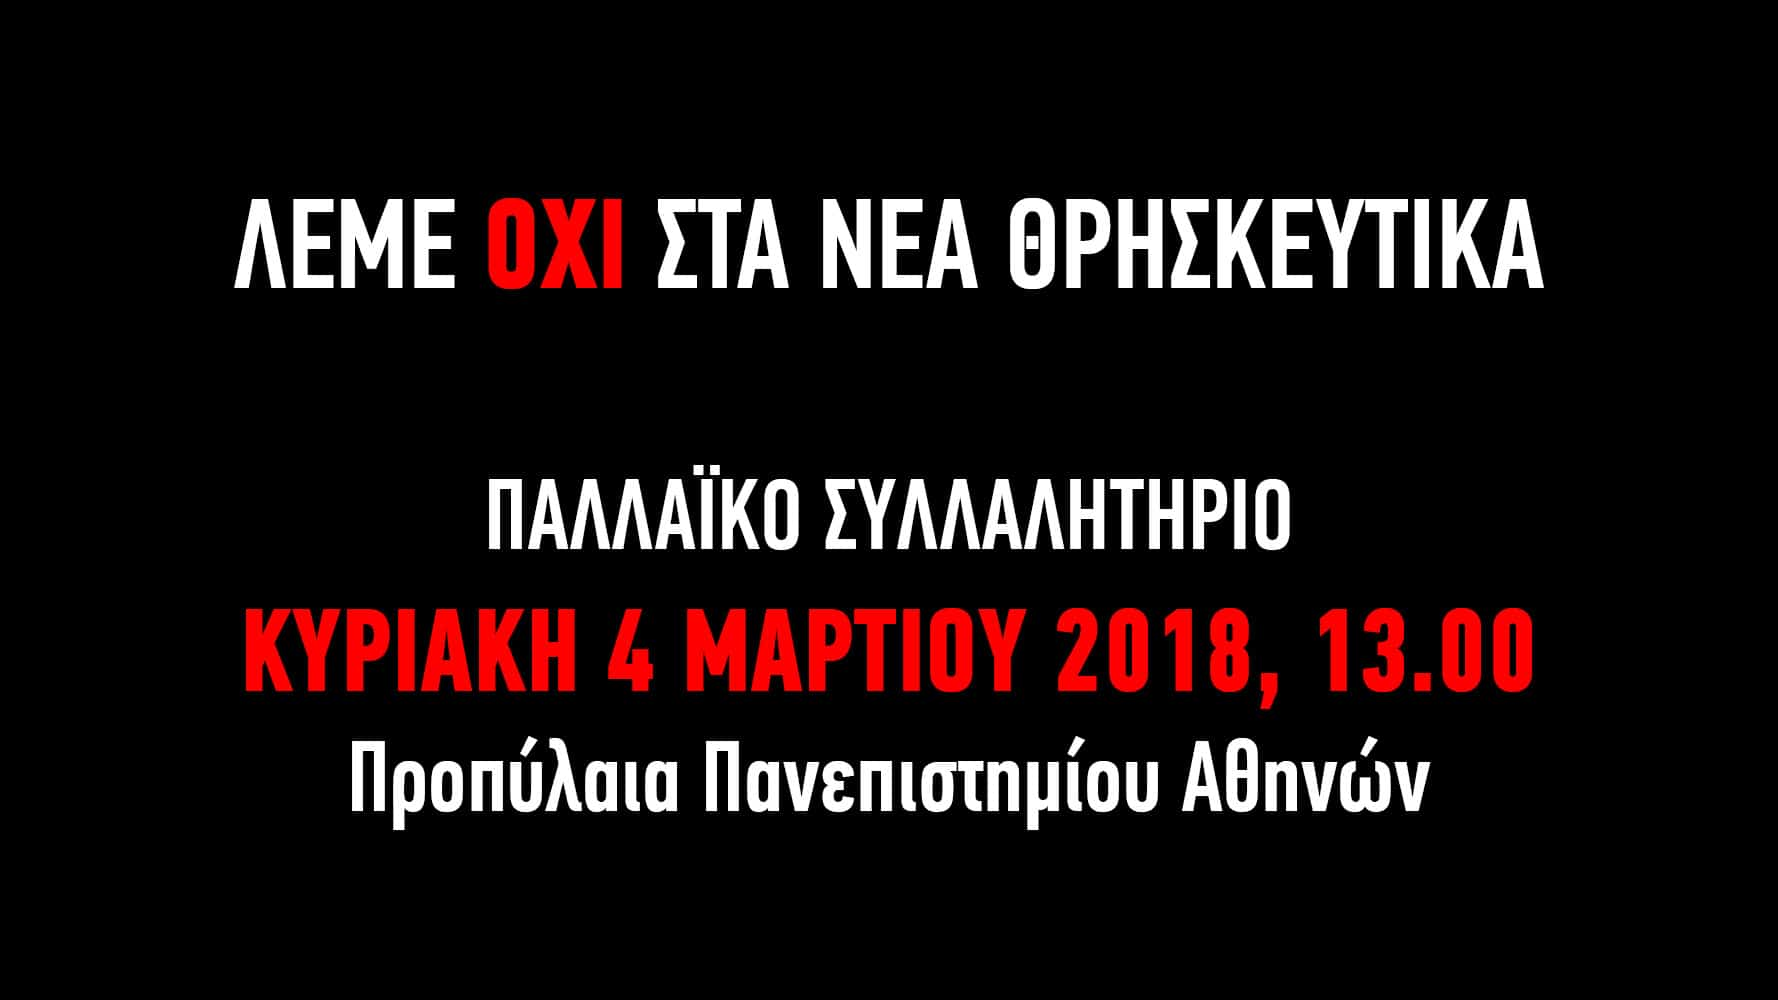 magcon ραντεβού φαντάζεται